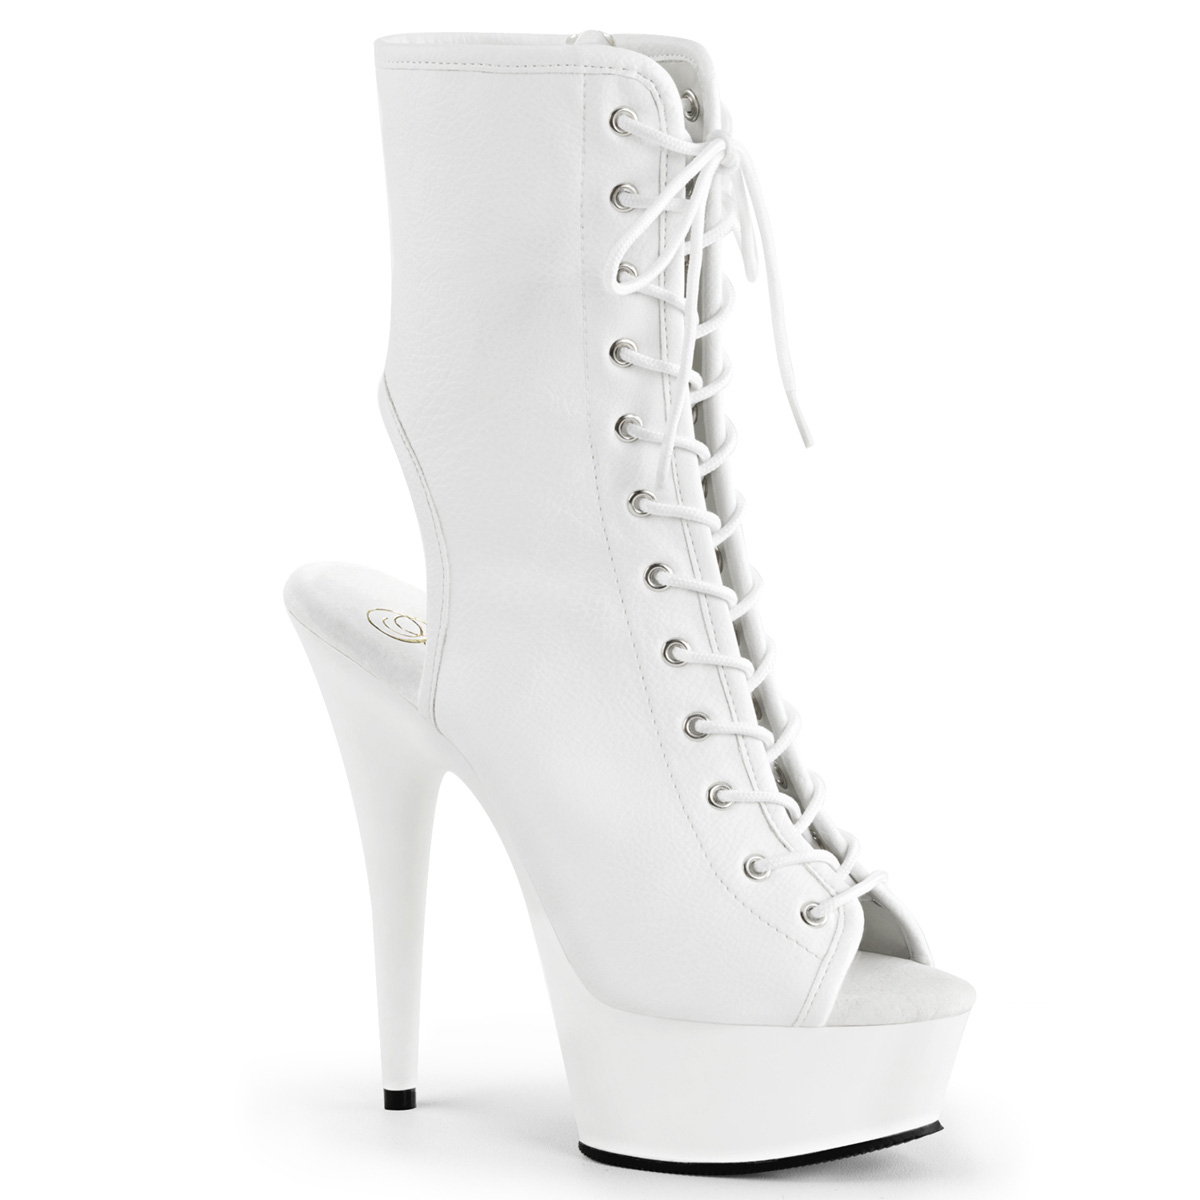 Delight-1016 White Pu Ankle Boot